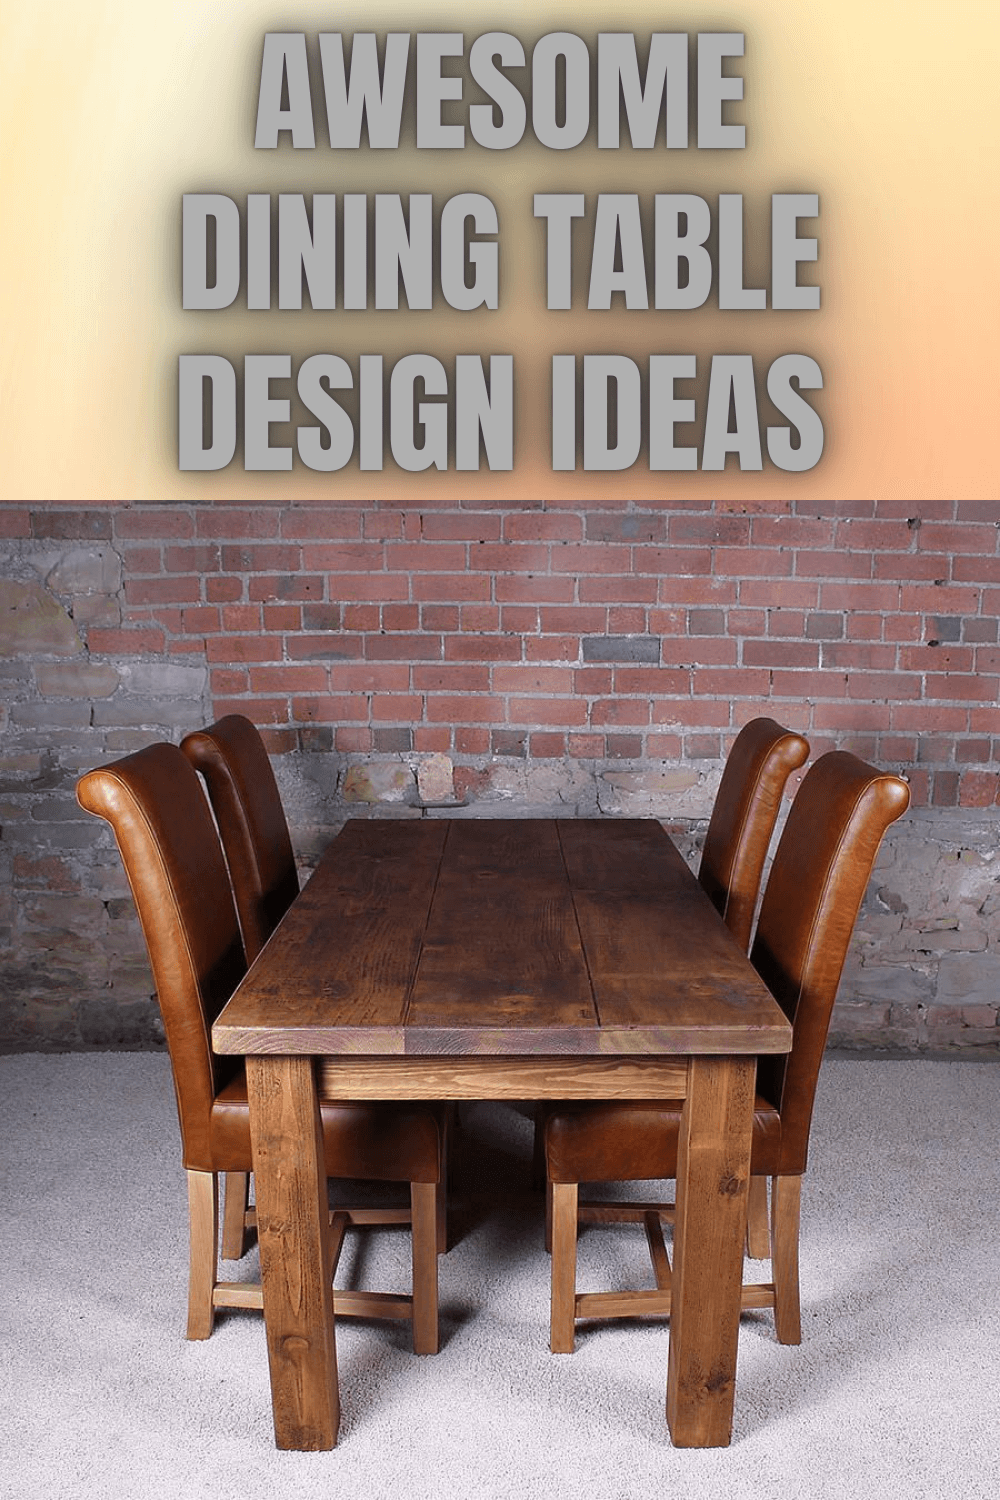 Awesome Dining Table Design Ideas Dining Table Design Wooden Dining Tables Wood Dining Room Furniture